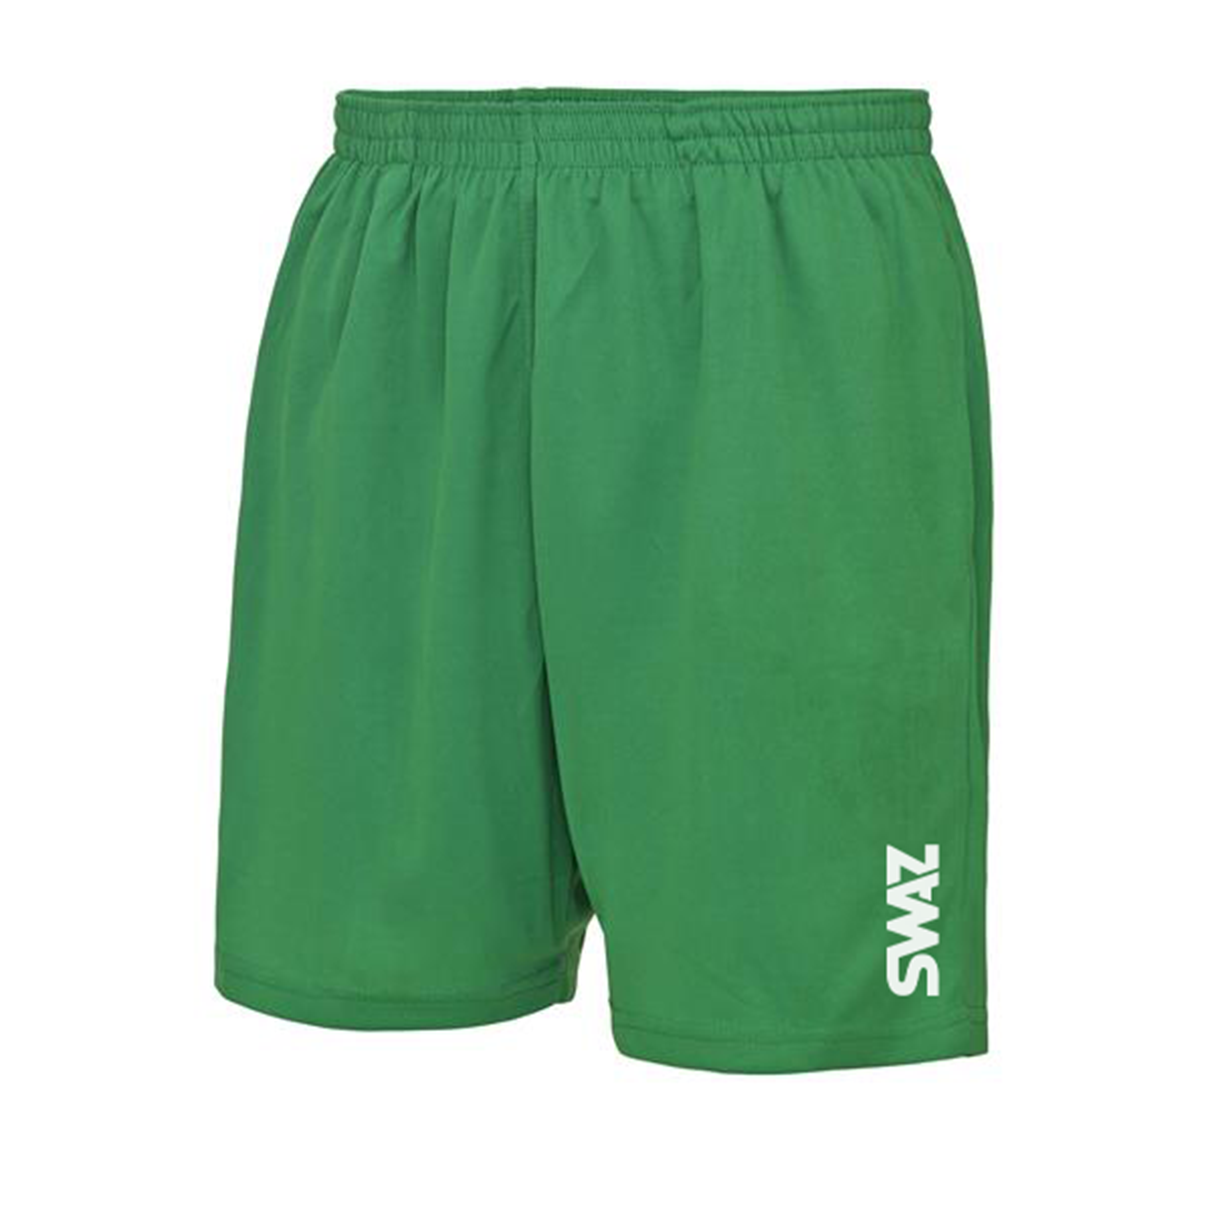 SWAZ Training Shorts – Green